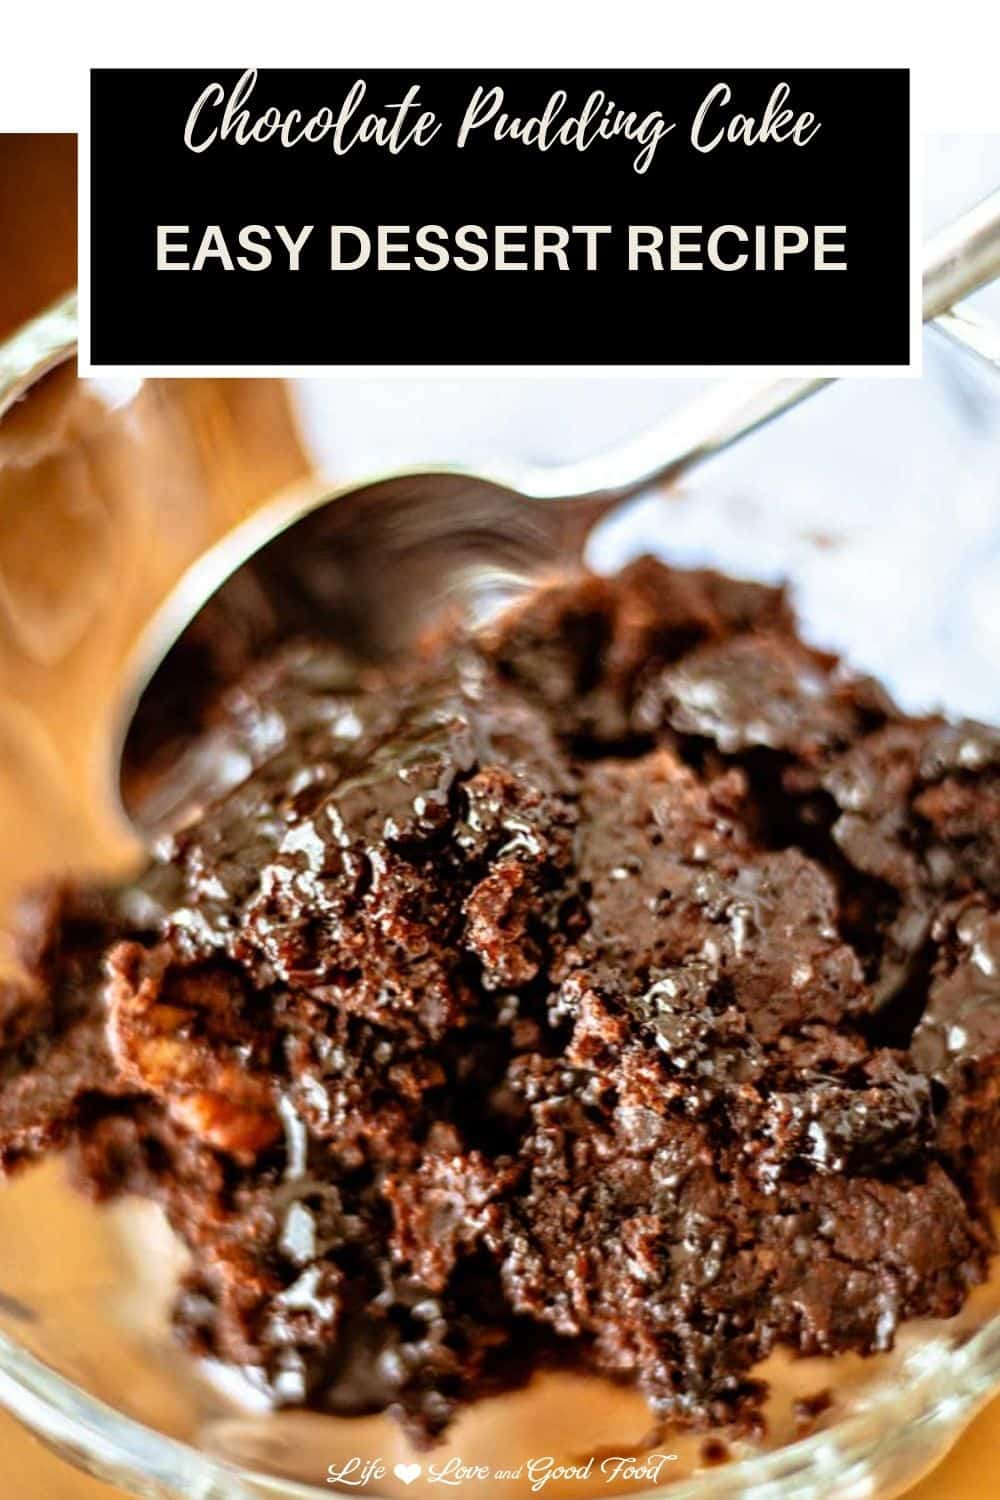 Chocolate Pudding Cake makes its own gooey chocolate sauce as it bakes and is equally delicious served either warm or cold. With its rich chocolate flavor, this EASY chocolate cake is ah-mazing served warm with vanilla ice cream.